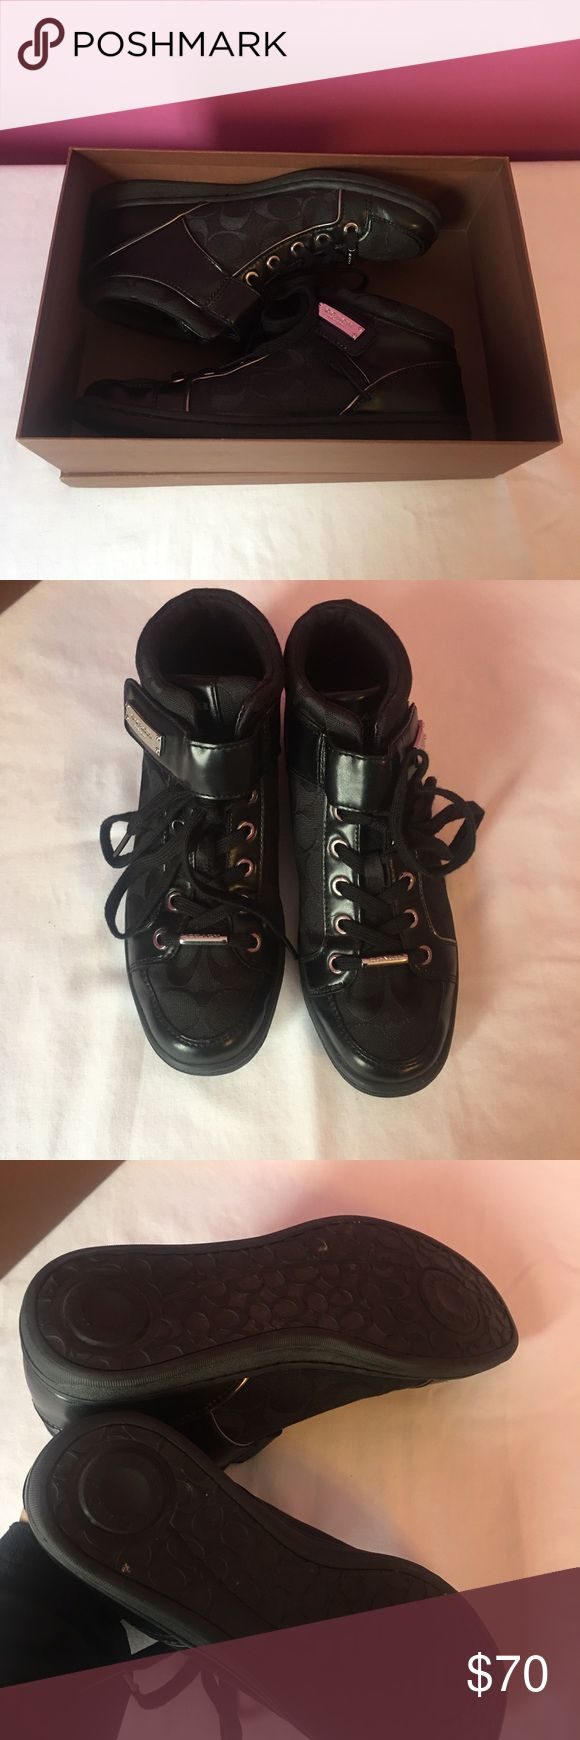 coach sneakers velcro straps & silver detailing  got them for christmas years back, only worn once pls let me know if you'd like the box they came in as well  bought at macy's Coach Shoes Sneakers